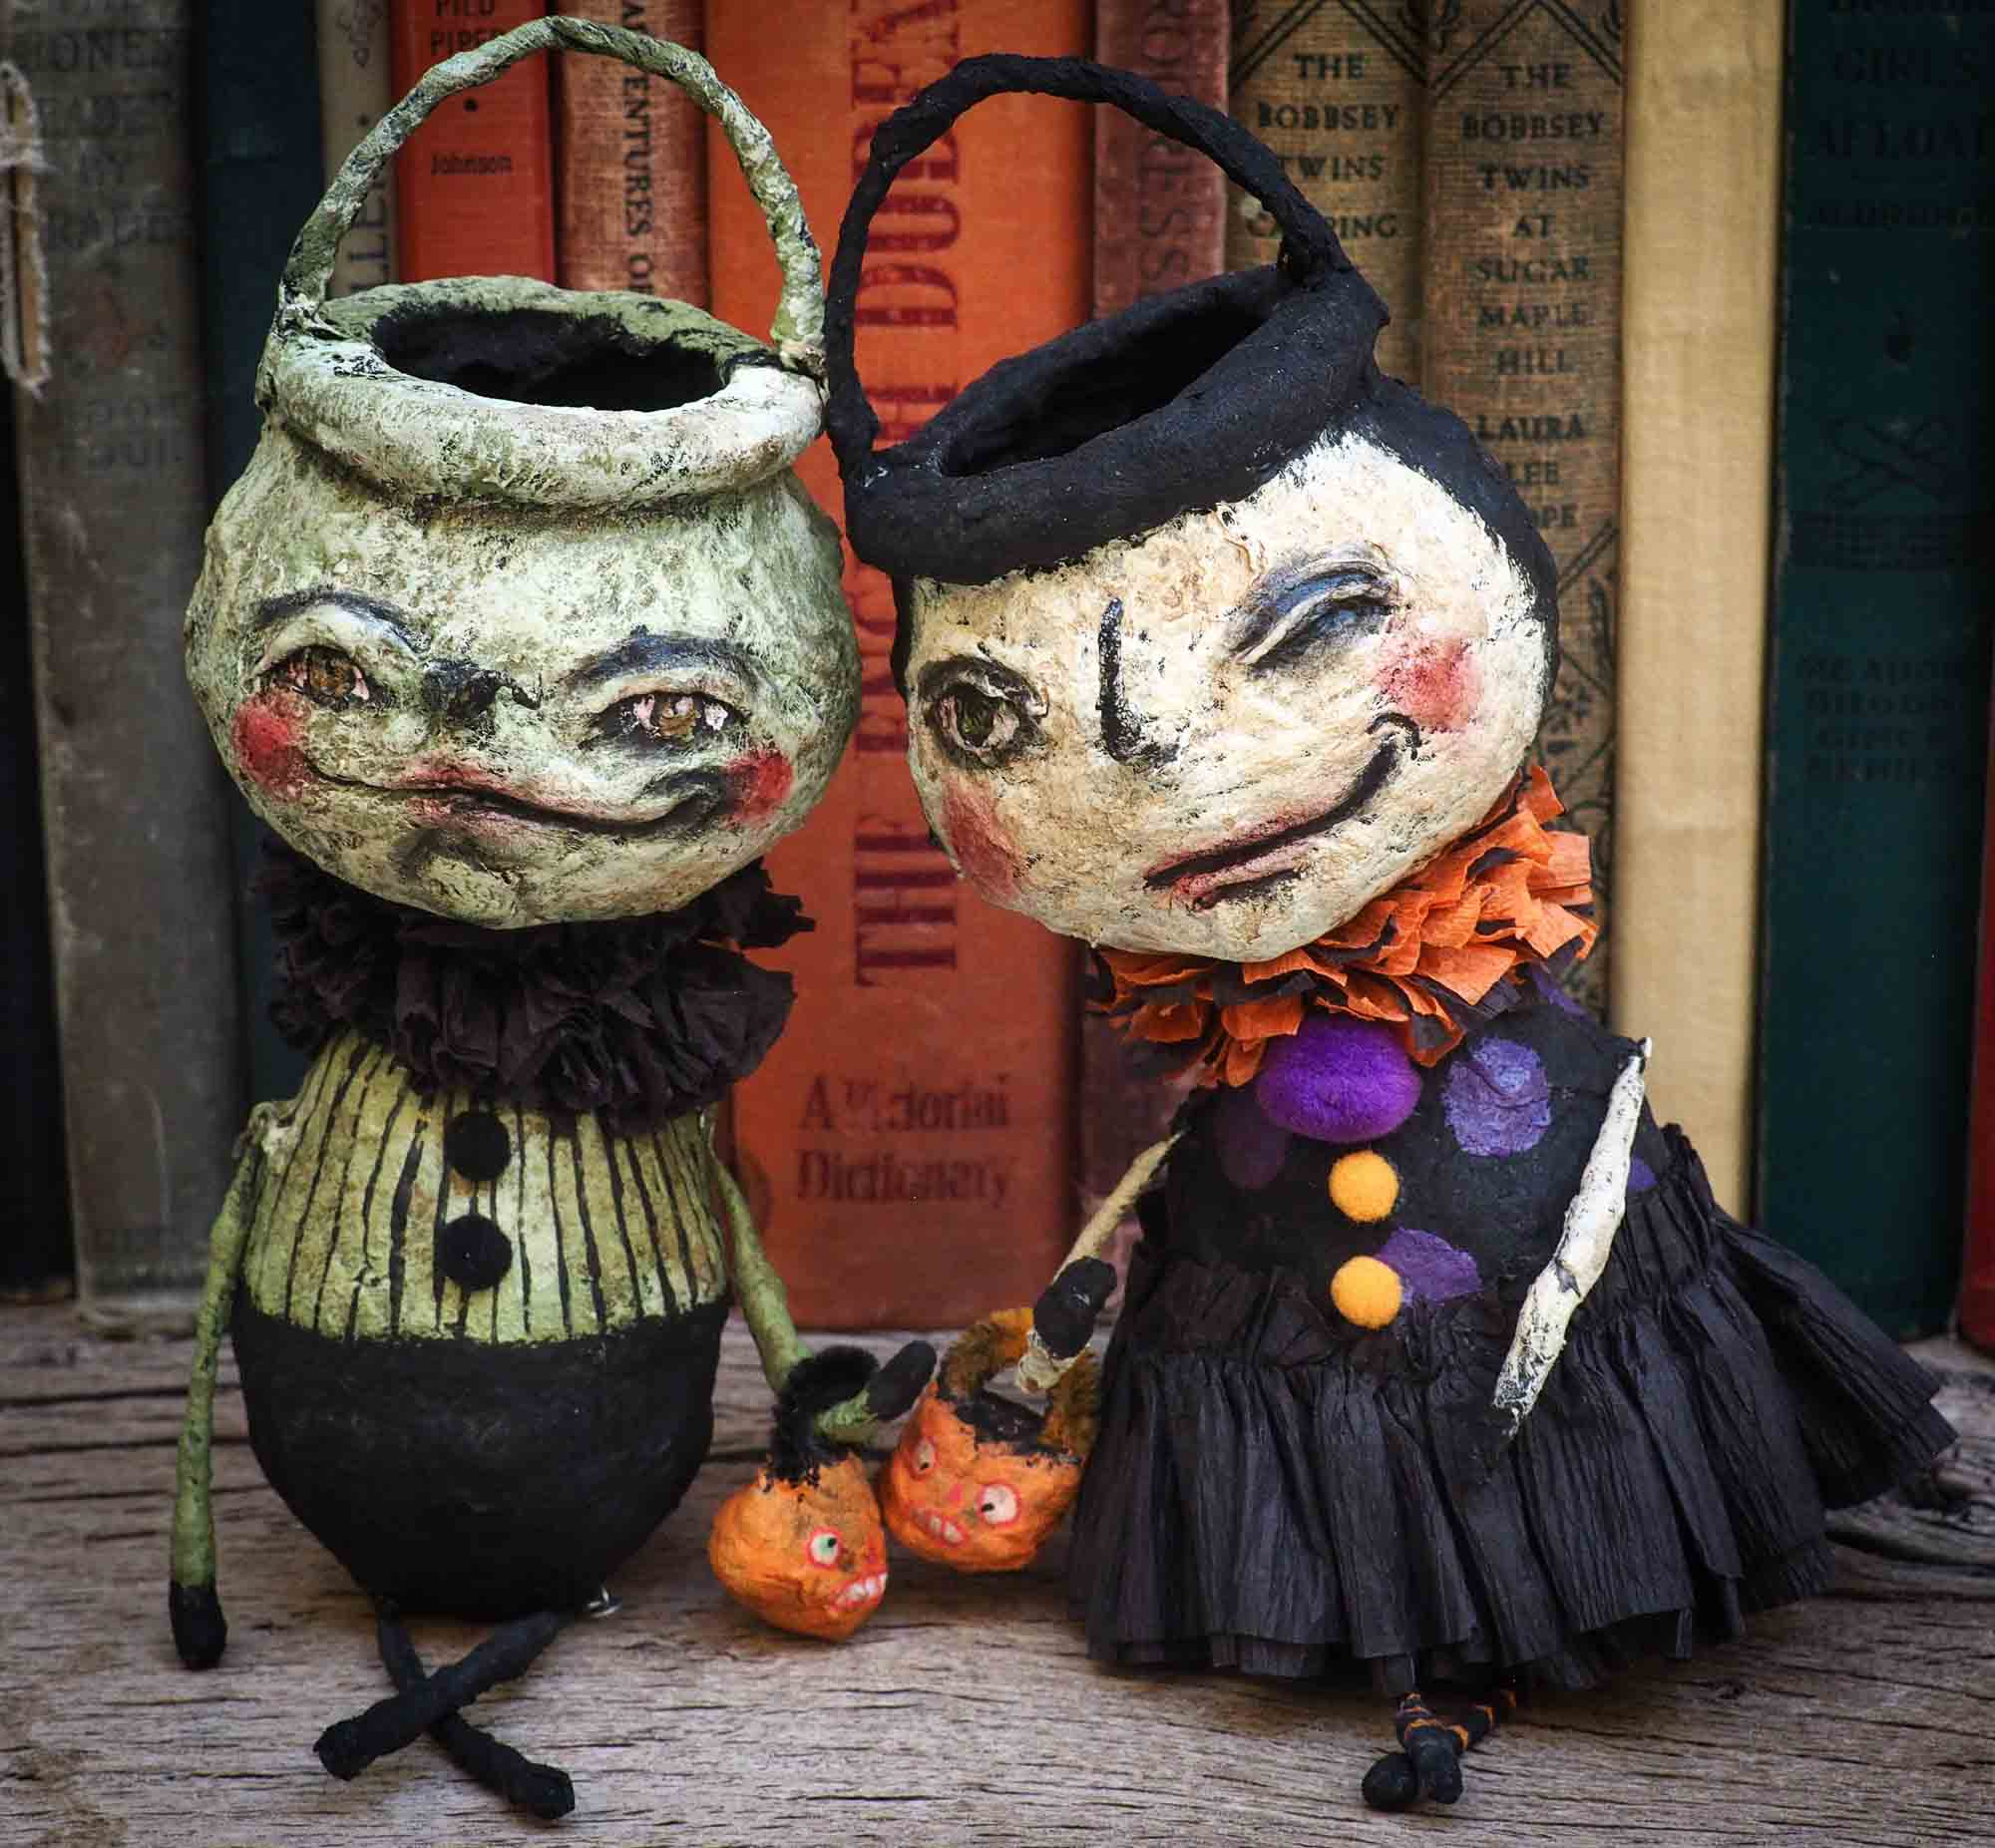 Amazing collection of Halloween handmade art dolls by Danita. Pumpkins, jack-o-lanterns, witches, ghosts, ghouls and other night creatures are home decor decorations created in paper clay by Danita Art.